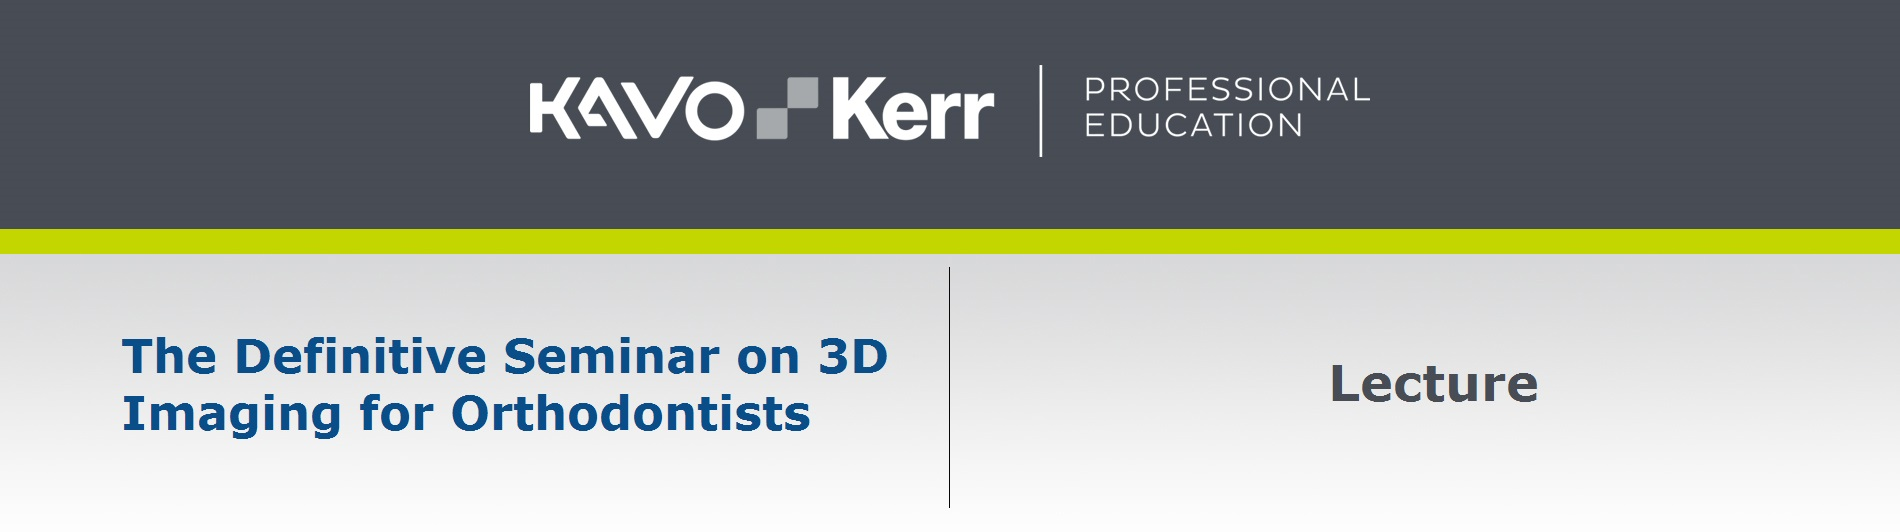 The Definitive Seminar on 3D Imaging for Orthodontists Presented by: Robert Kaspers, DDS, MS